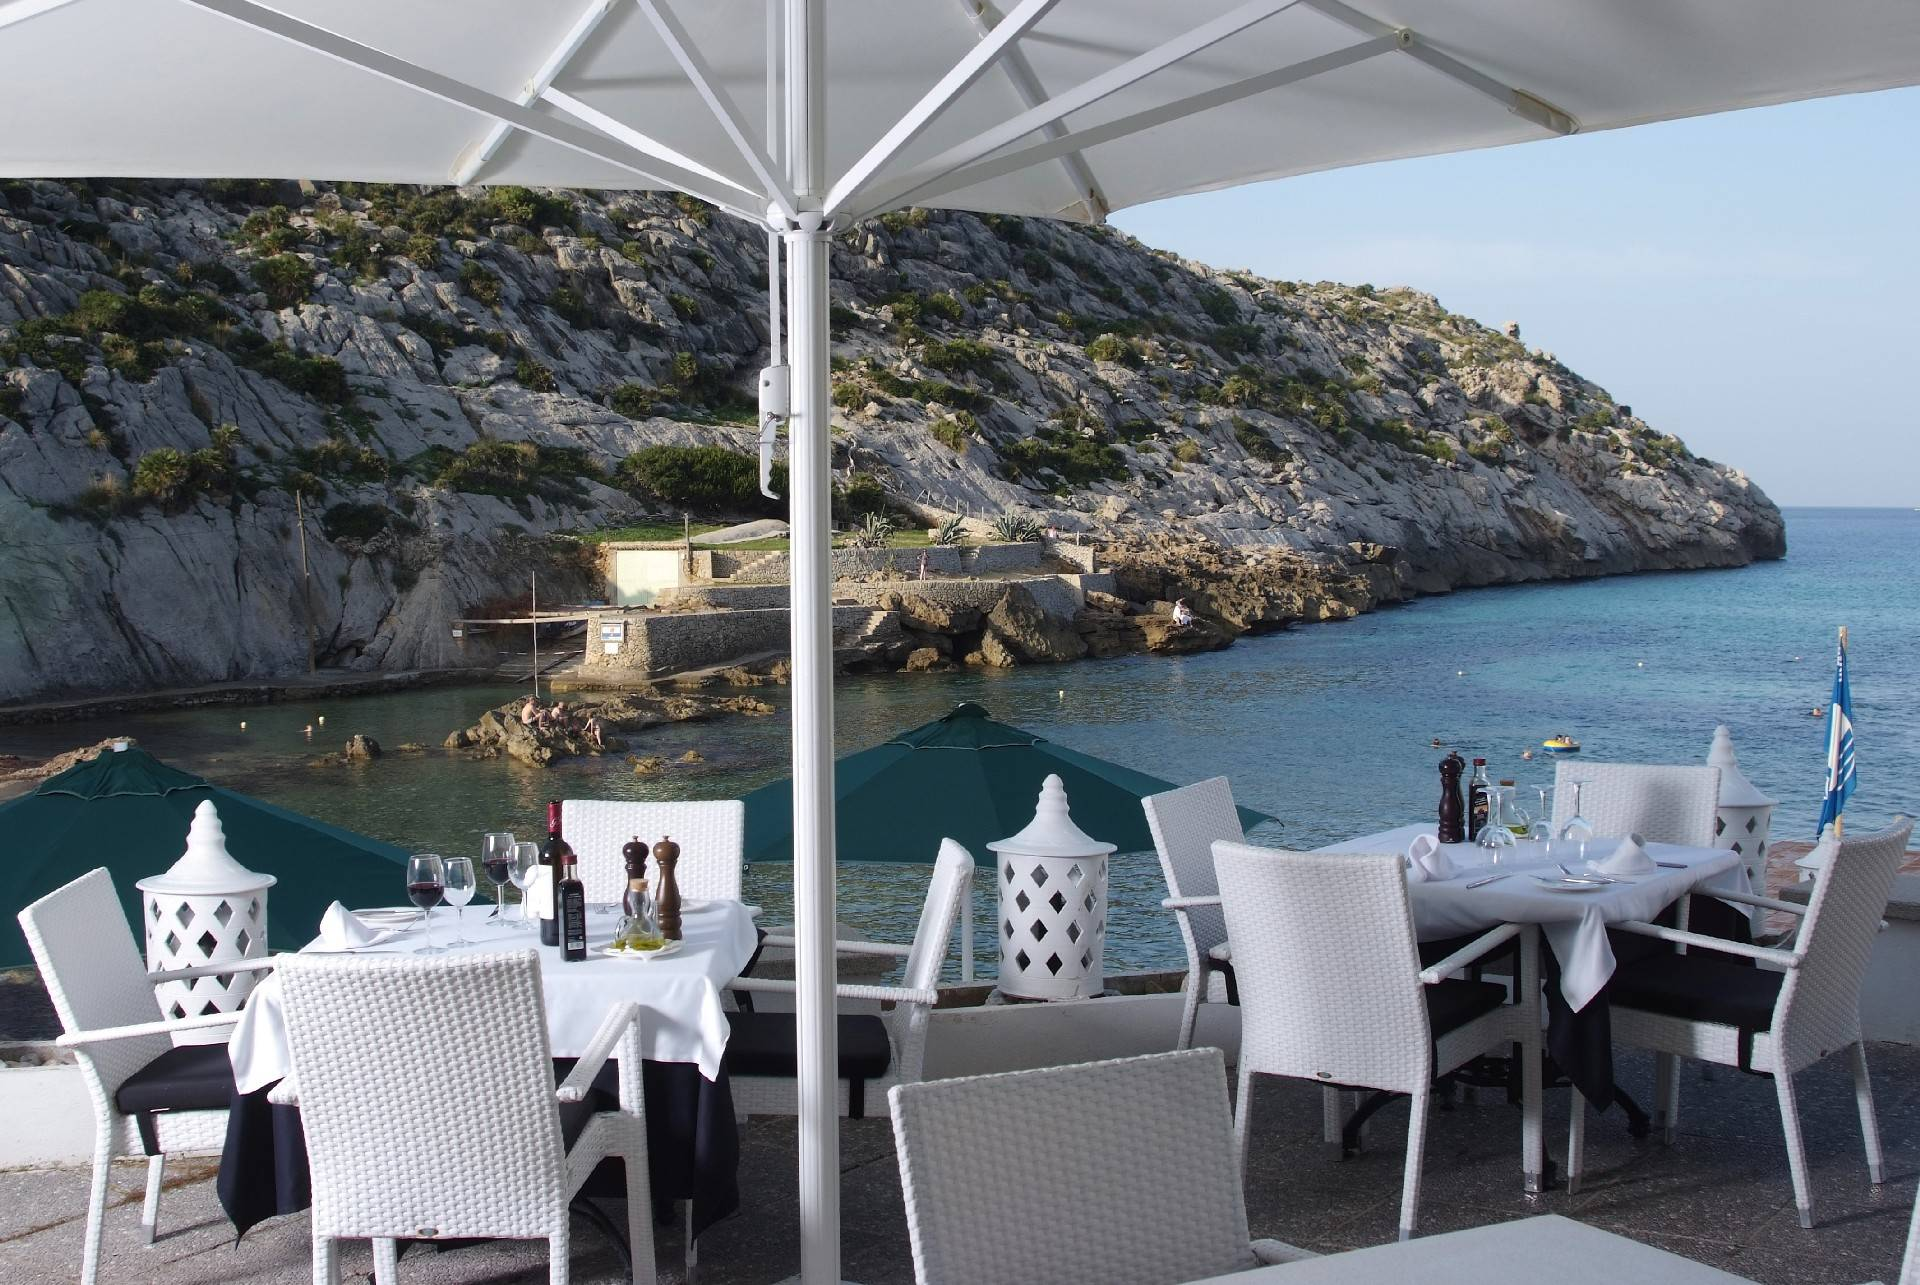 restaurant-terrace-with-view-over-the-bay-at-the-hotel-niu-restaurant-cala-san-vicente--by-hoposa